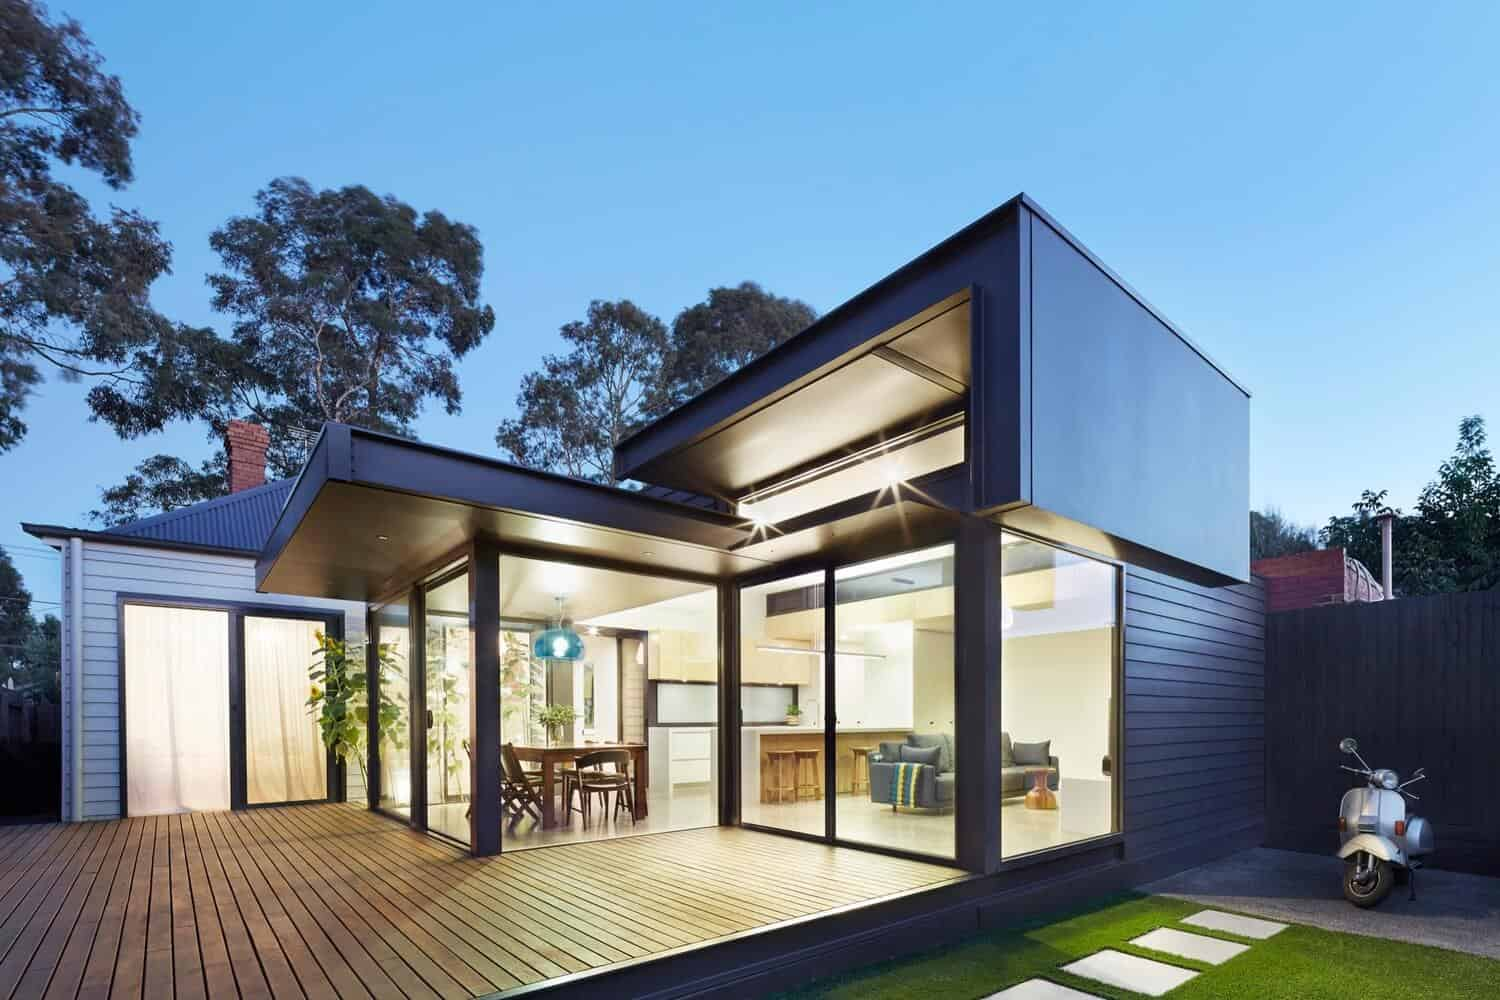 Victorian Home Updated with Modern Pod by Nic Owen Architects 5